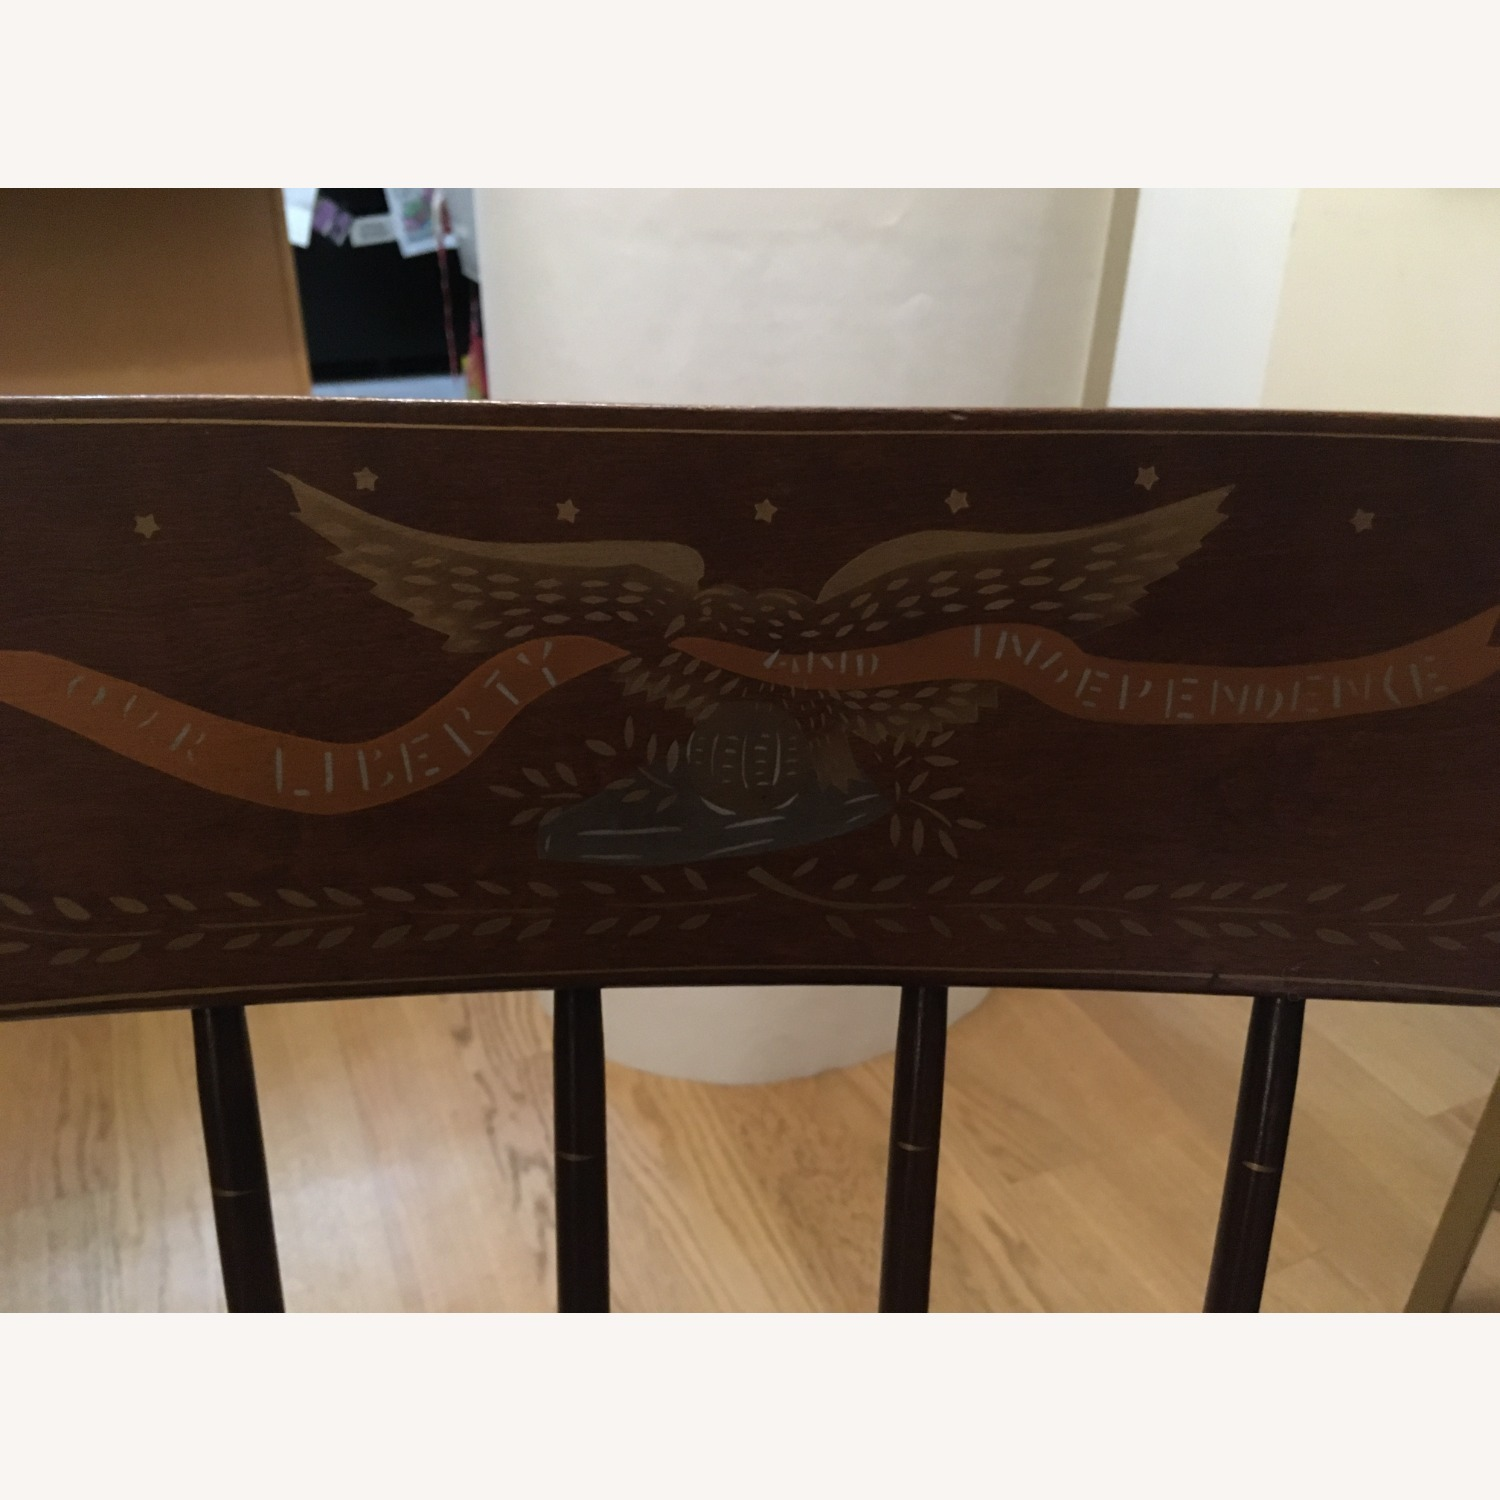 Vintage Rocking Chair with Americana Stenciling - image-6